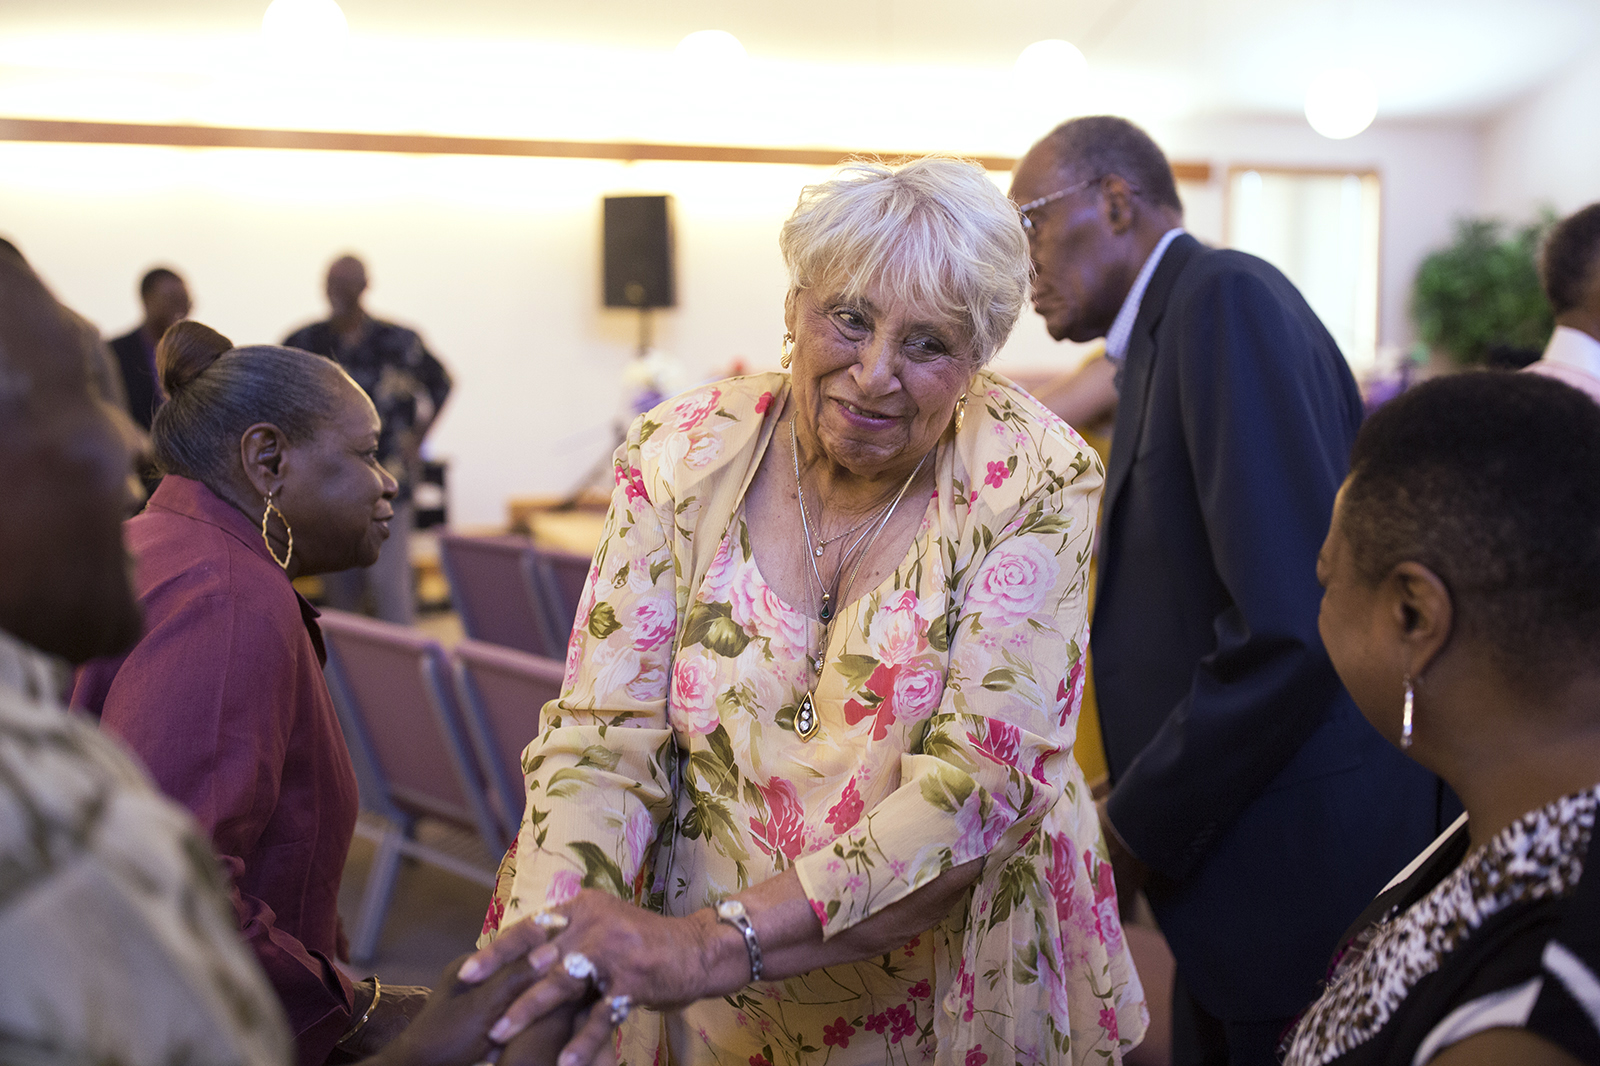 Doris Fiddmont Frazier, center, and other p arishioners worship at Union Baptist Church, a fixture in Westland Acres. The community, founded by a former enslaved man, has existed for more than 200 years and now finds itself sandwiched between two of the region's wealthiest suburbs while being left out of the benefits of the wealthier, whiter areas.PHOTO BY CAROLINA HIDALGO | ST. LOUIS PUBLIC RADIO